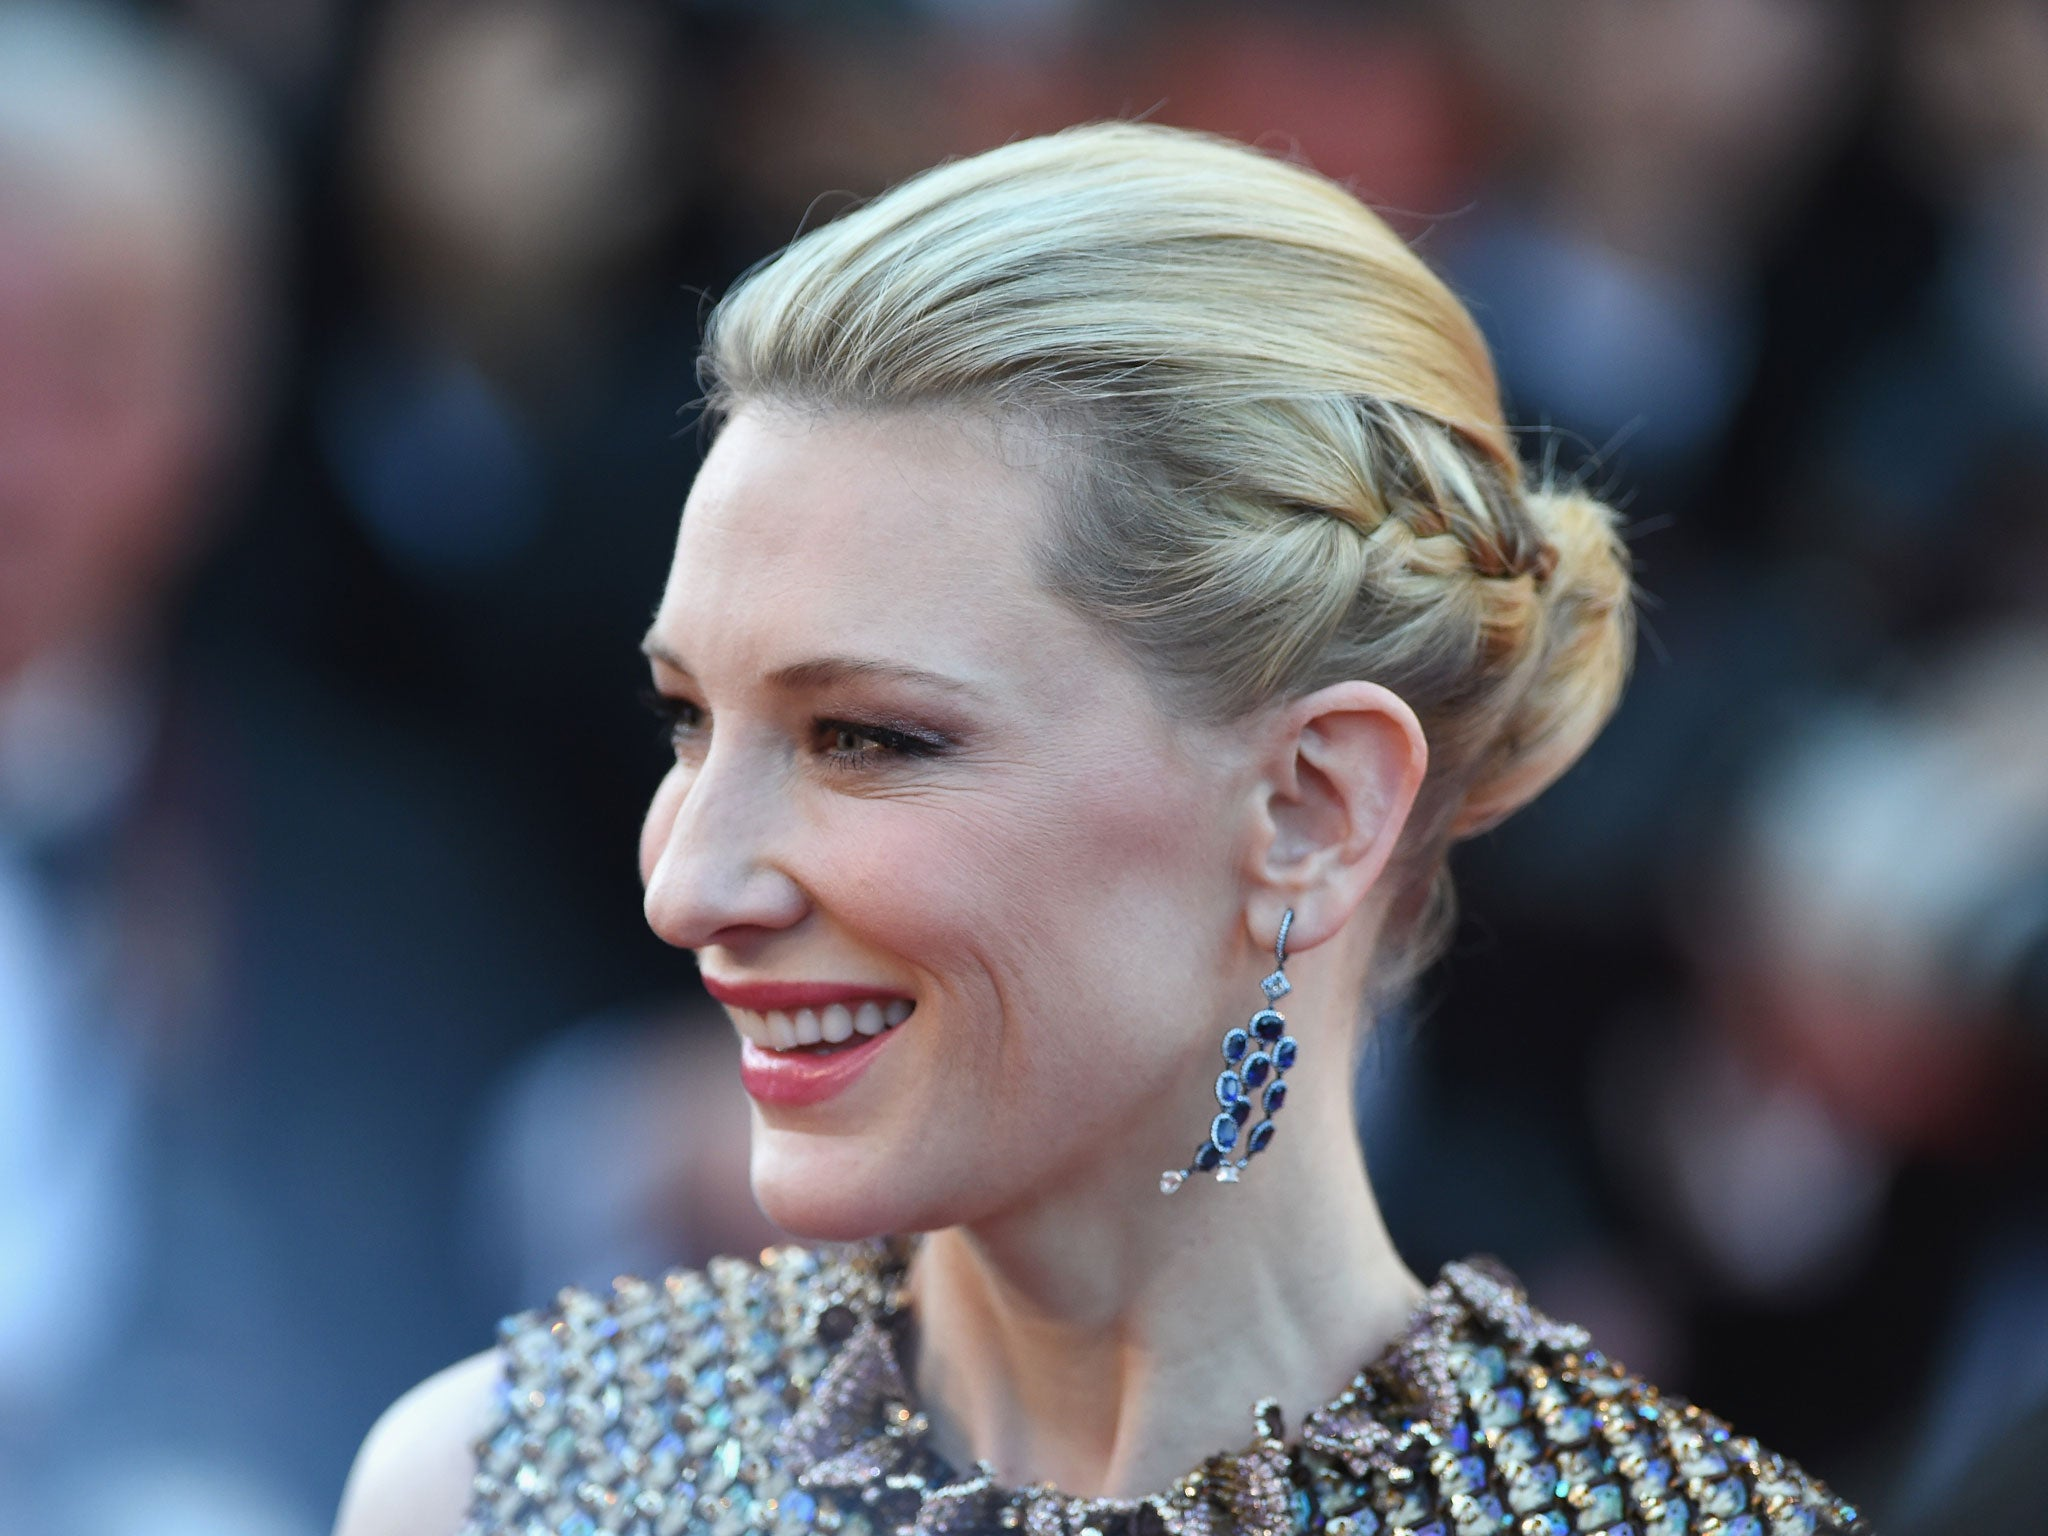 http://static.independent.co.uk/s3fs-public/thumbnails/image/2014/05/17/15/Cate-Blanchett-2.jpg